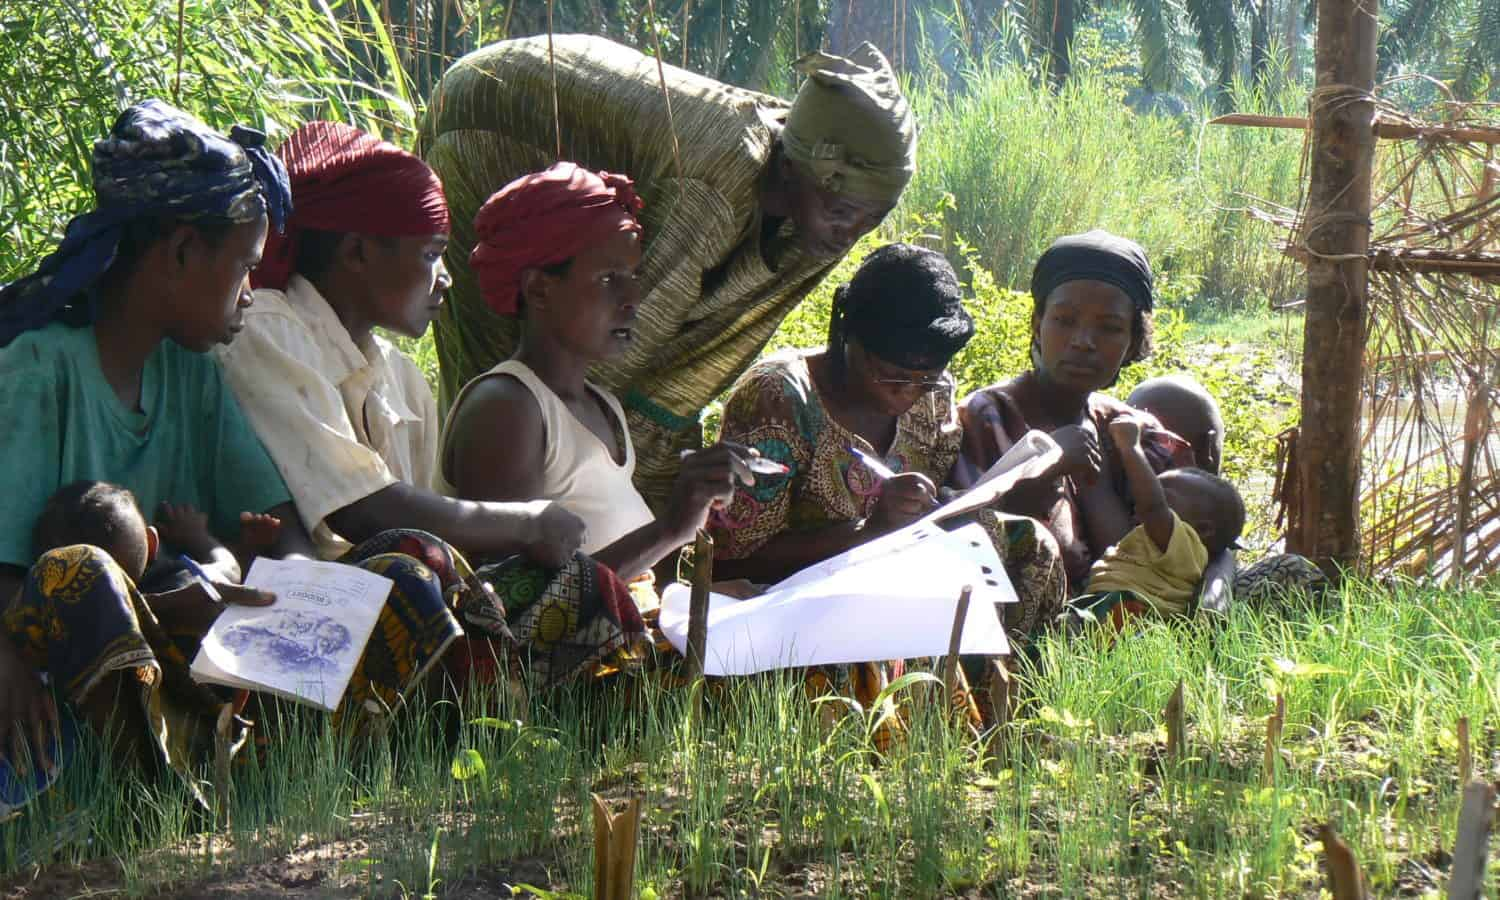 Is agroecology the solution to sustainable food systems?